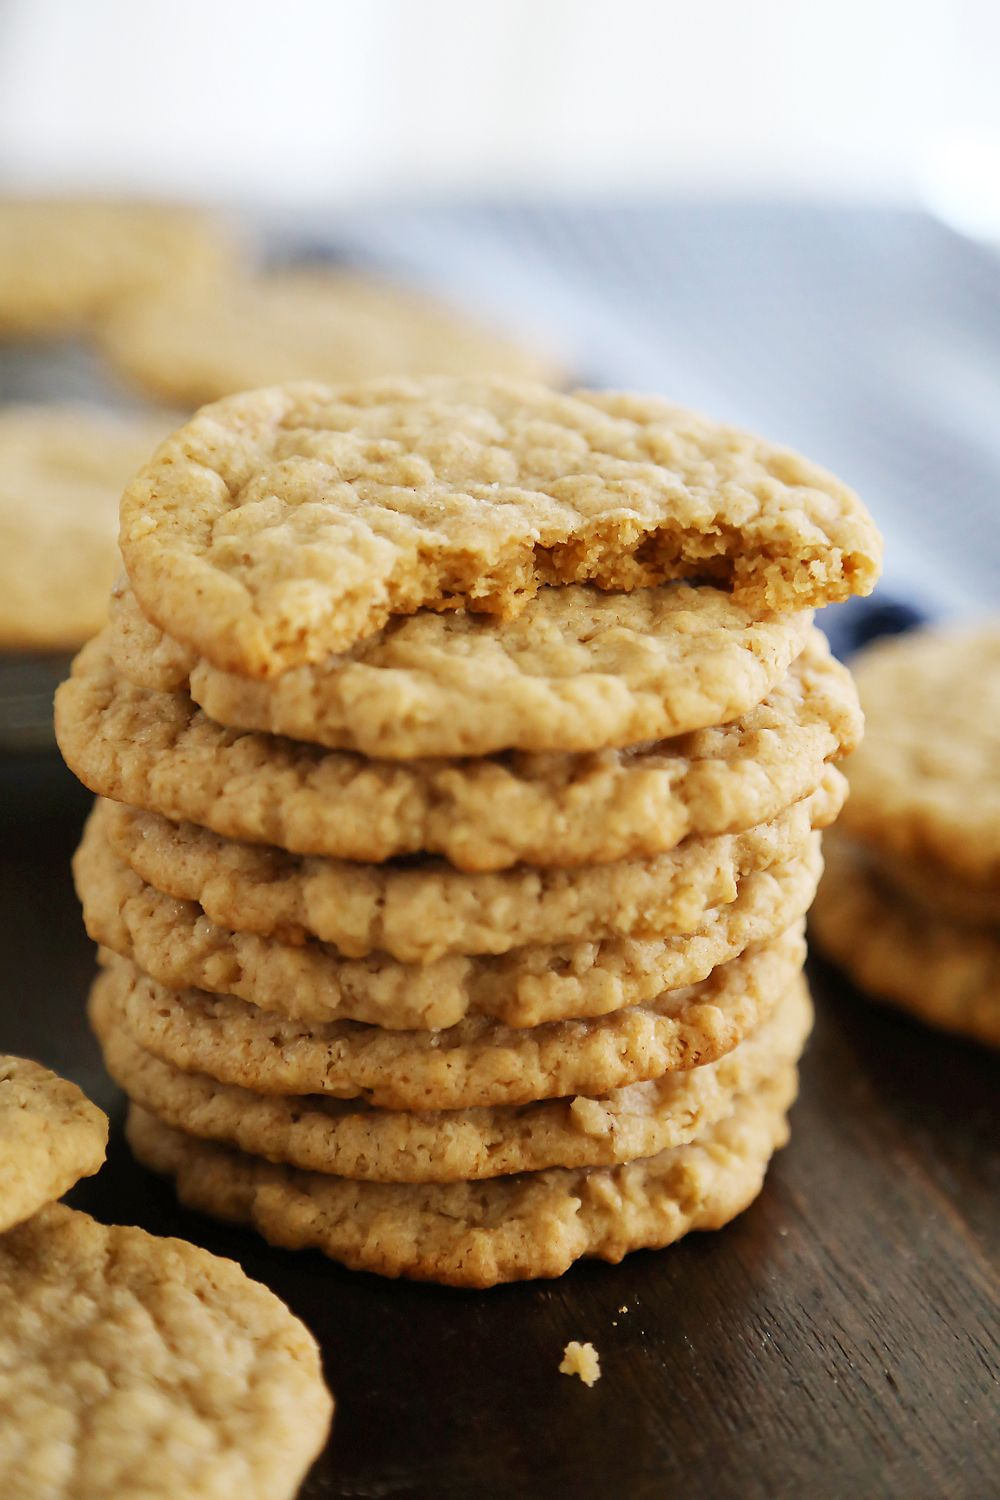 Best Old Fashioned Oatmeal Cookie Recipe